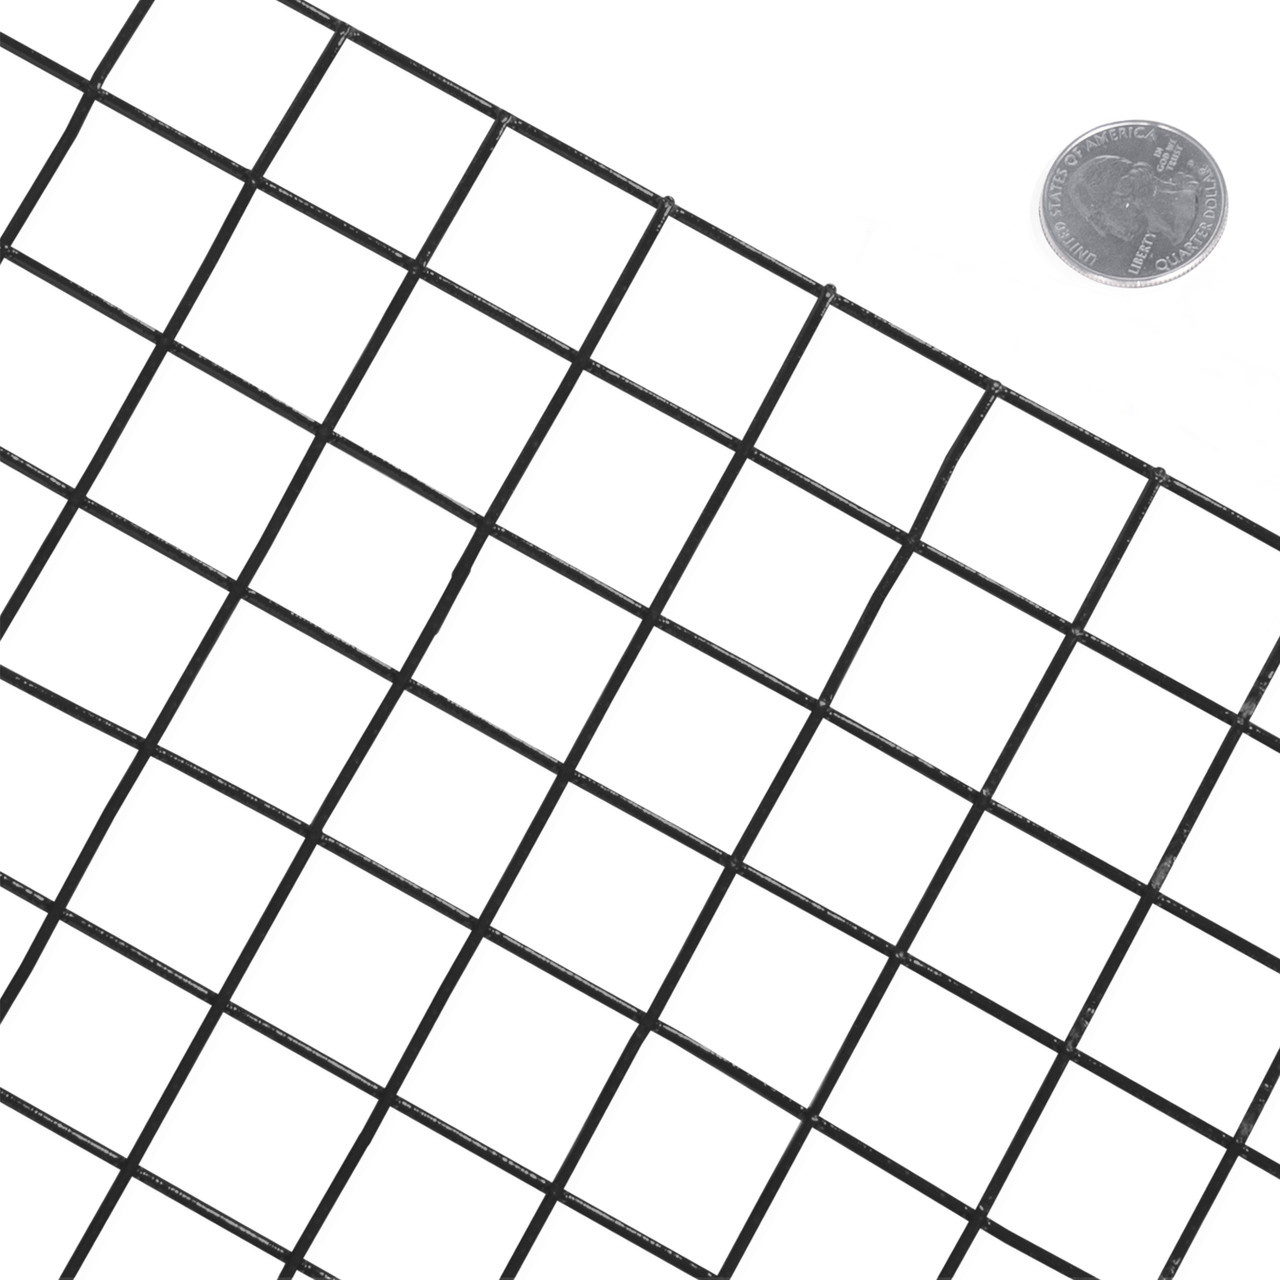 14 Gauge Black Vinyl Coated Welded Wire Mesh Size 1 Inch By 1 Inch Fencerwire